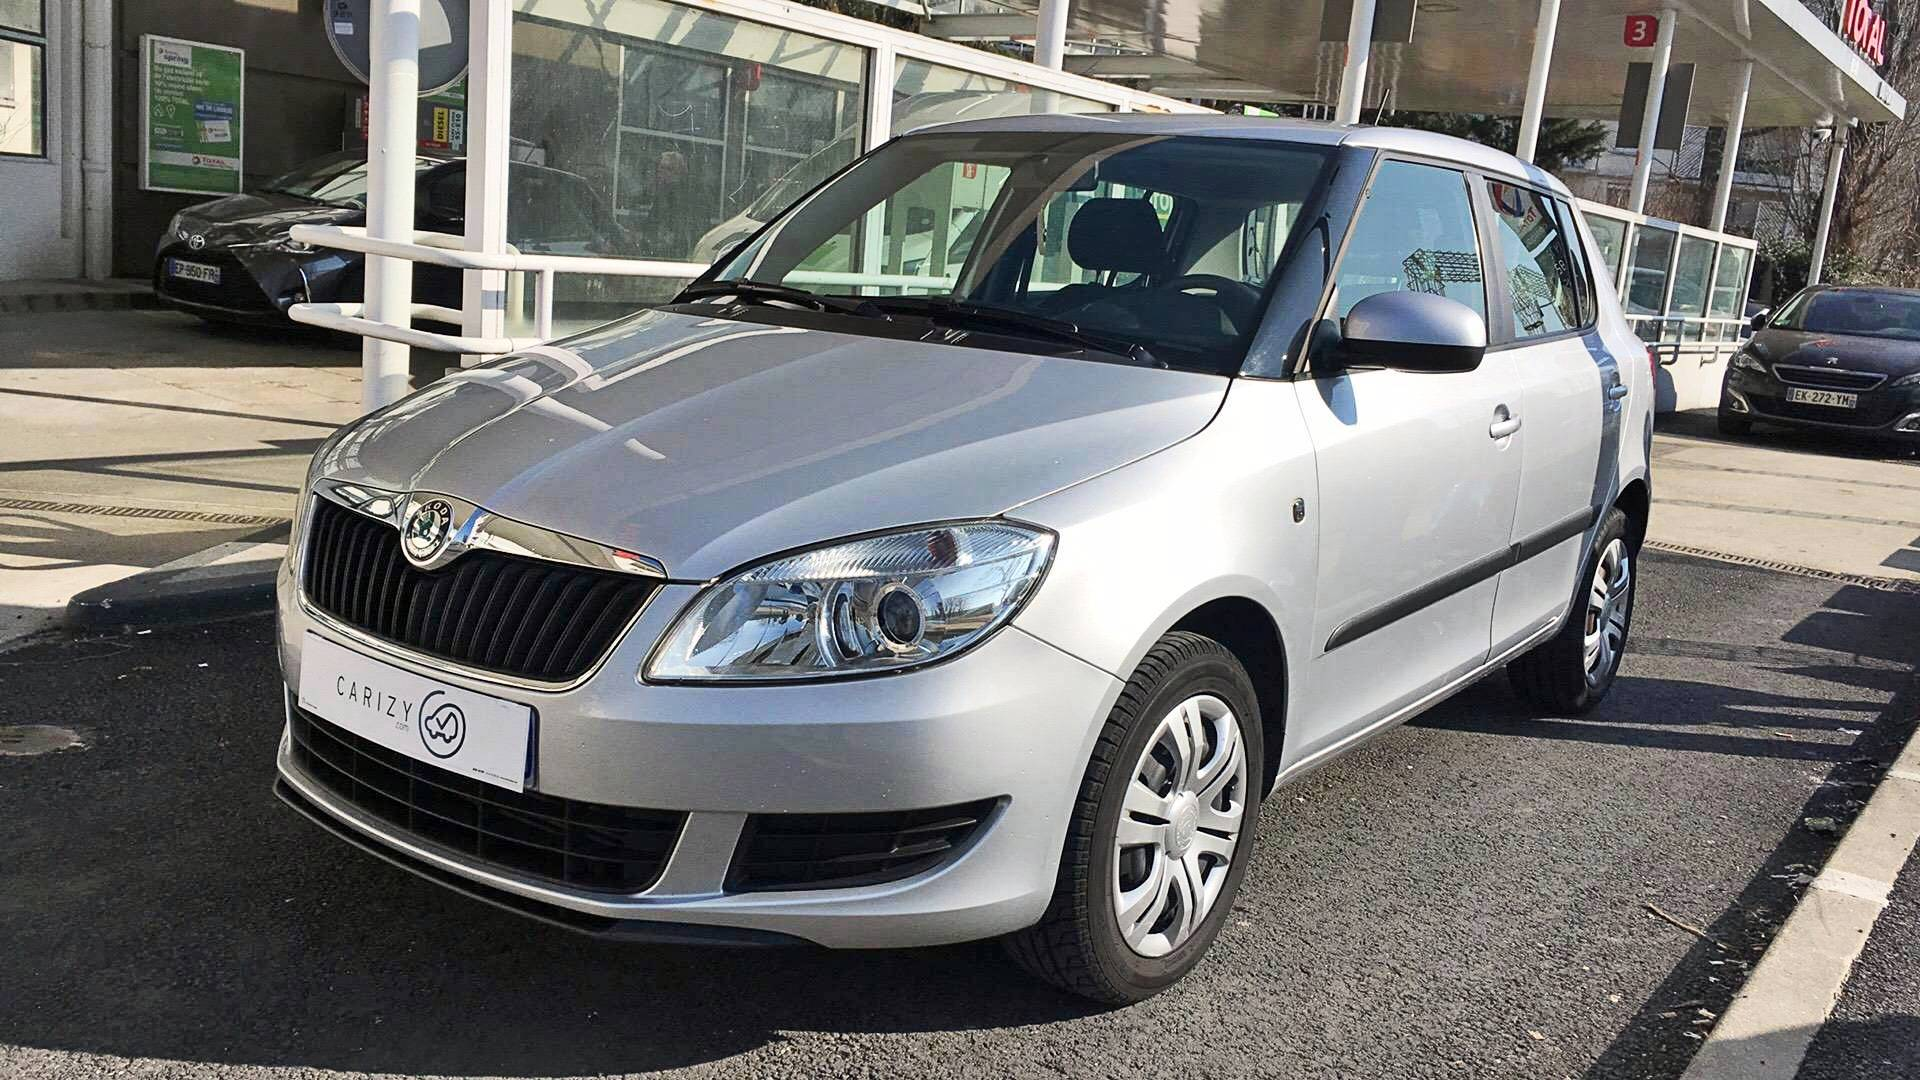 skoda fabia d 39 occasion 1 6 tdi 75 ambition juvisy sur orge carizy. Black Bedroom Furniture Sets. Home Design Ideas